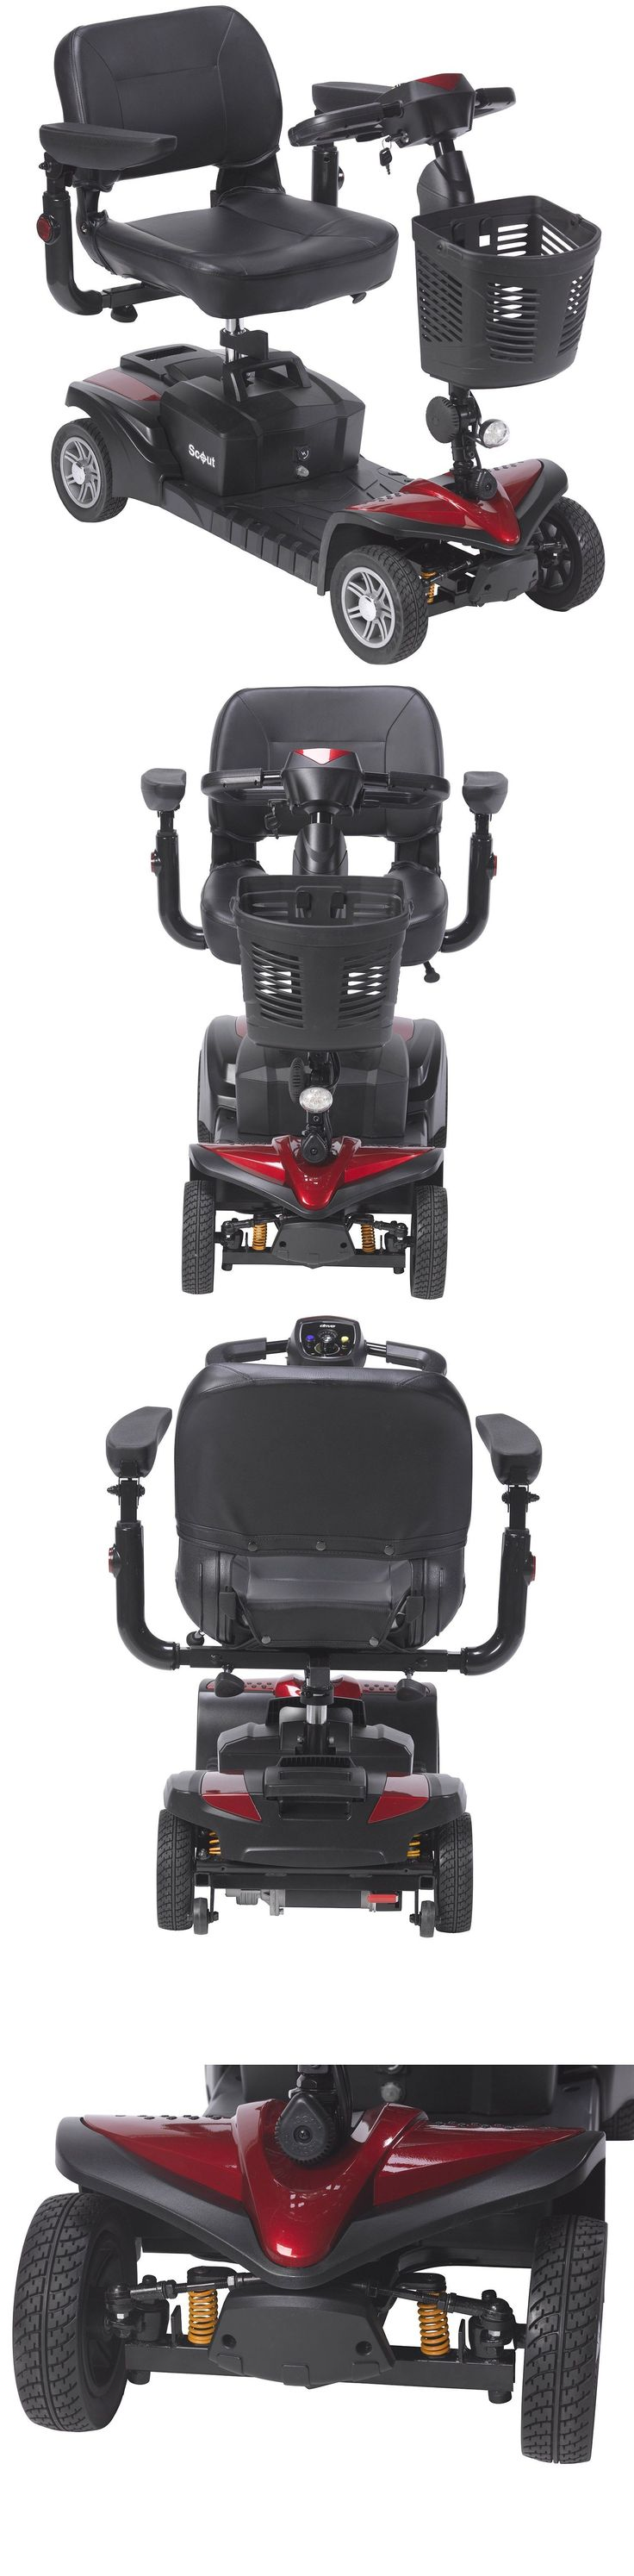 Mobility Scooters: New Model Scout Dst 4 Wheel Scooter, Dynamic Suspension Technology BUY IT NOW ONLY: $995.0